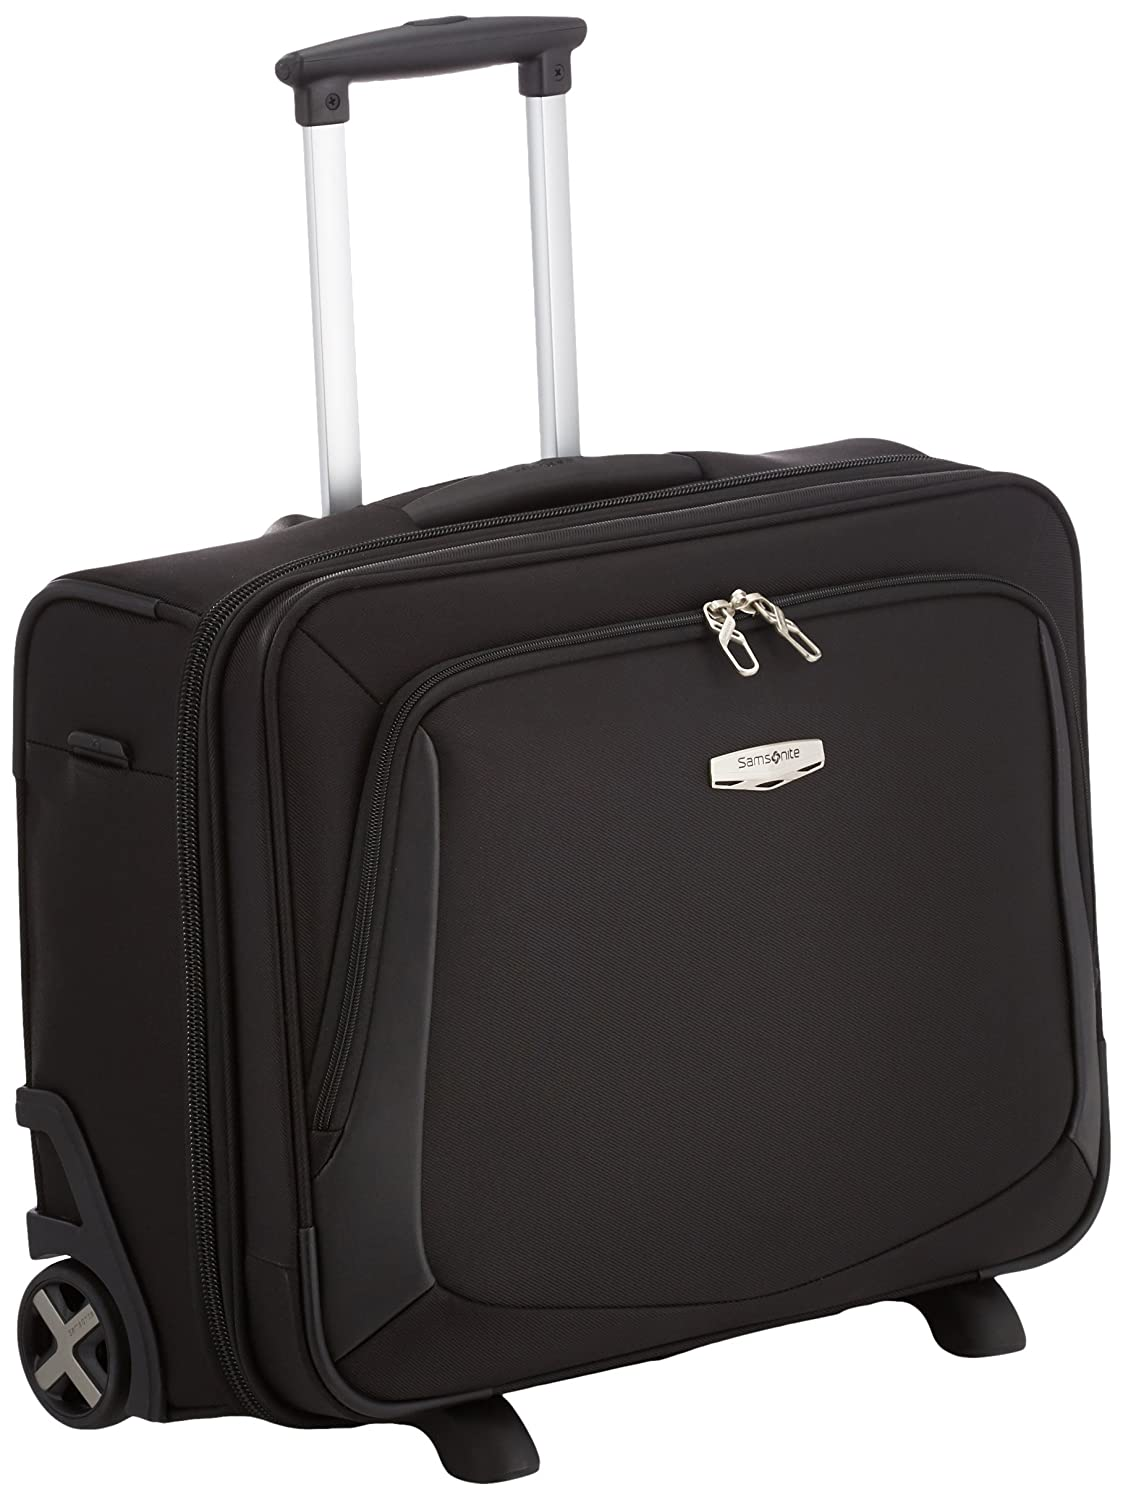 065b47eaa49dce Samsonite Pilot Case, 48 cm, 32 Liters, Black: Amazon.co.uk: Luggage